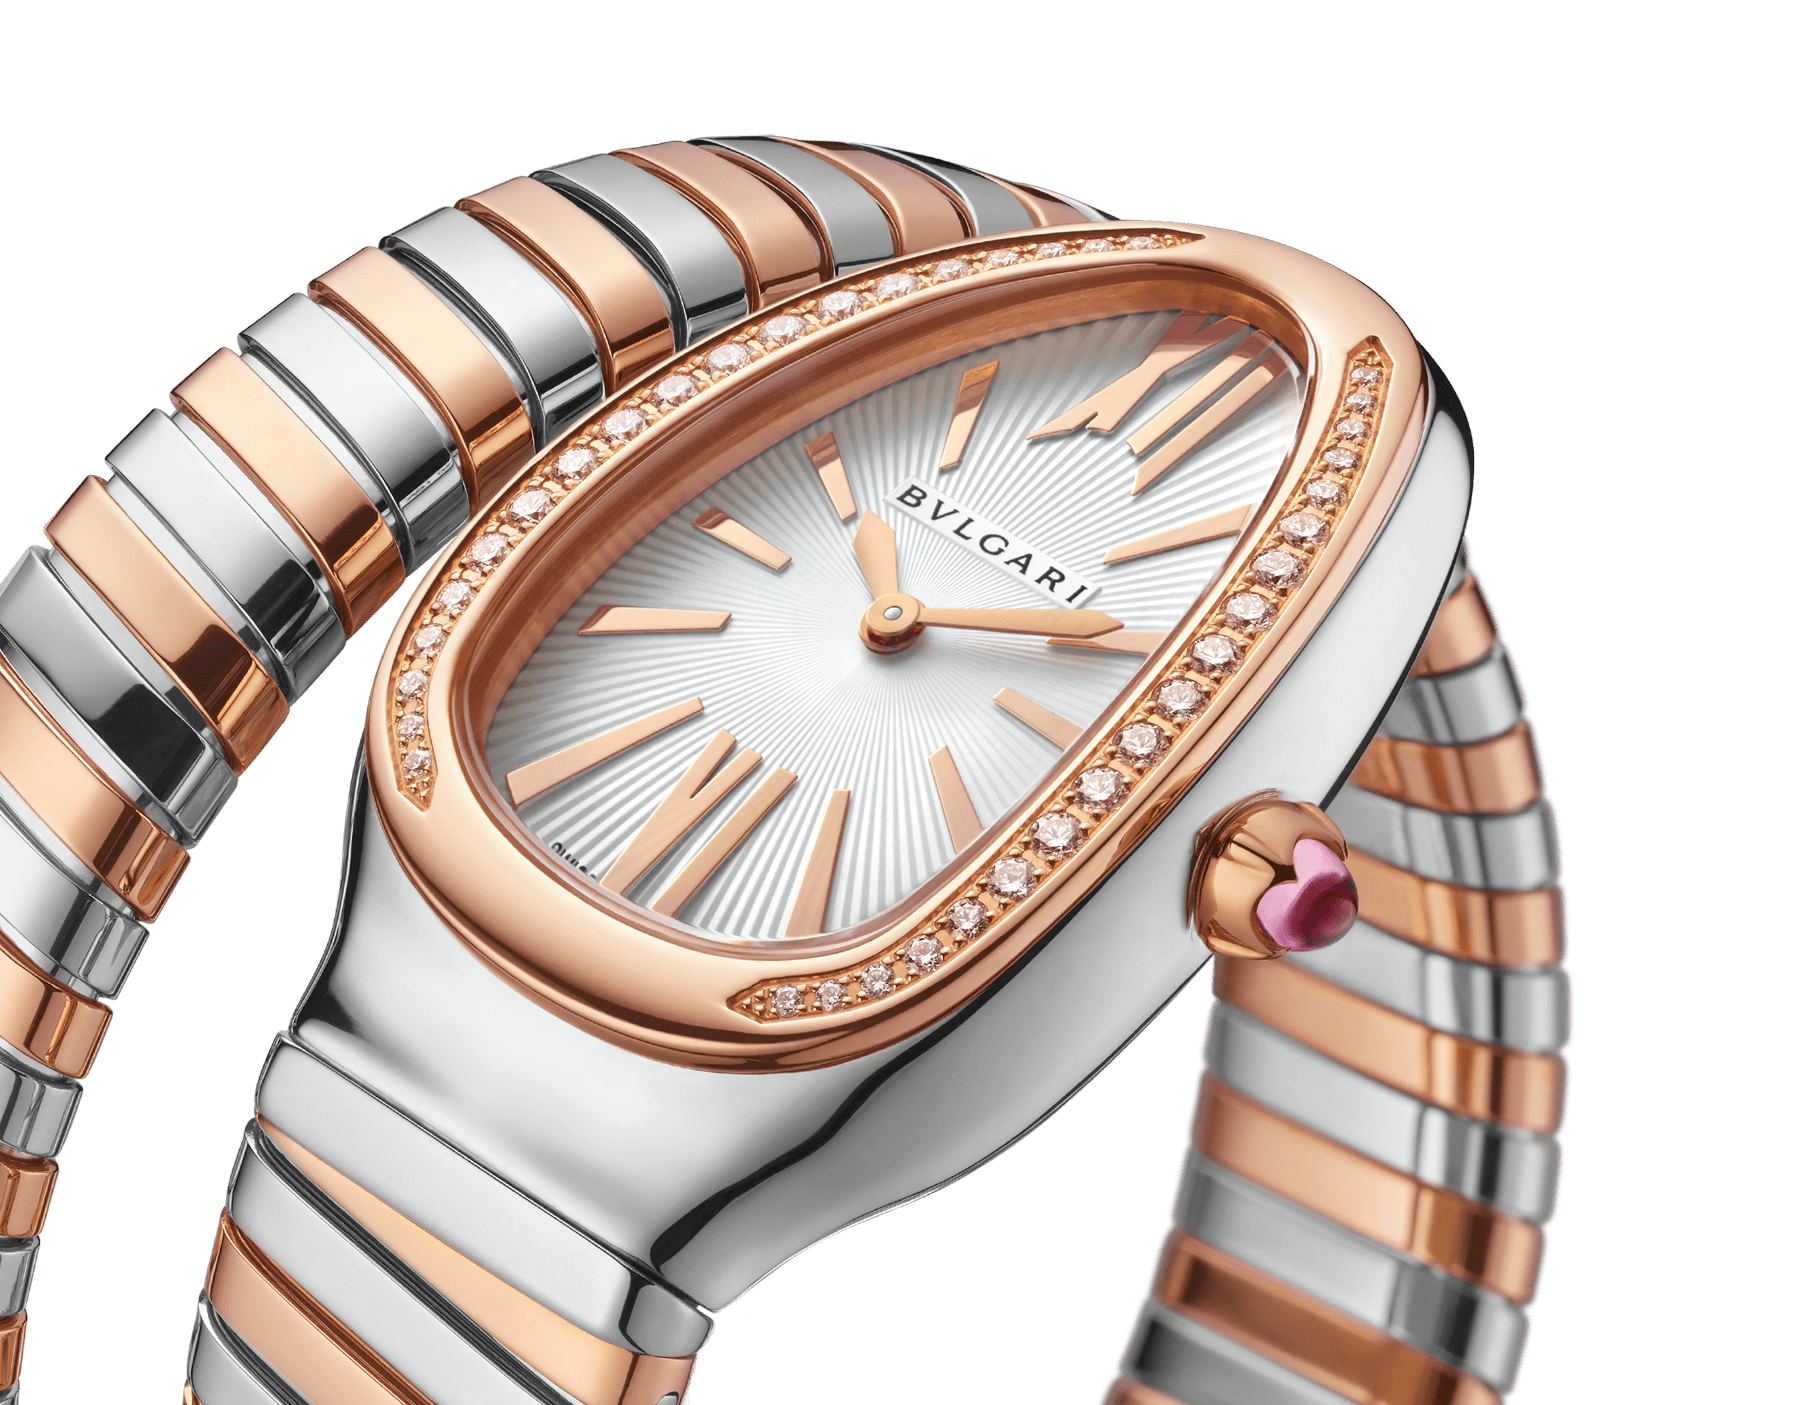 Serpenti Tubogas single spiral watch with stainless steel case, 18 kt rose gold bezel set with brilliant cut diamonds, silver opaline dial, 18 kt rose gold and stainless steel bracelet. 102237 image 3